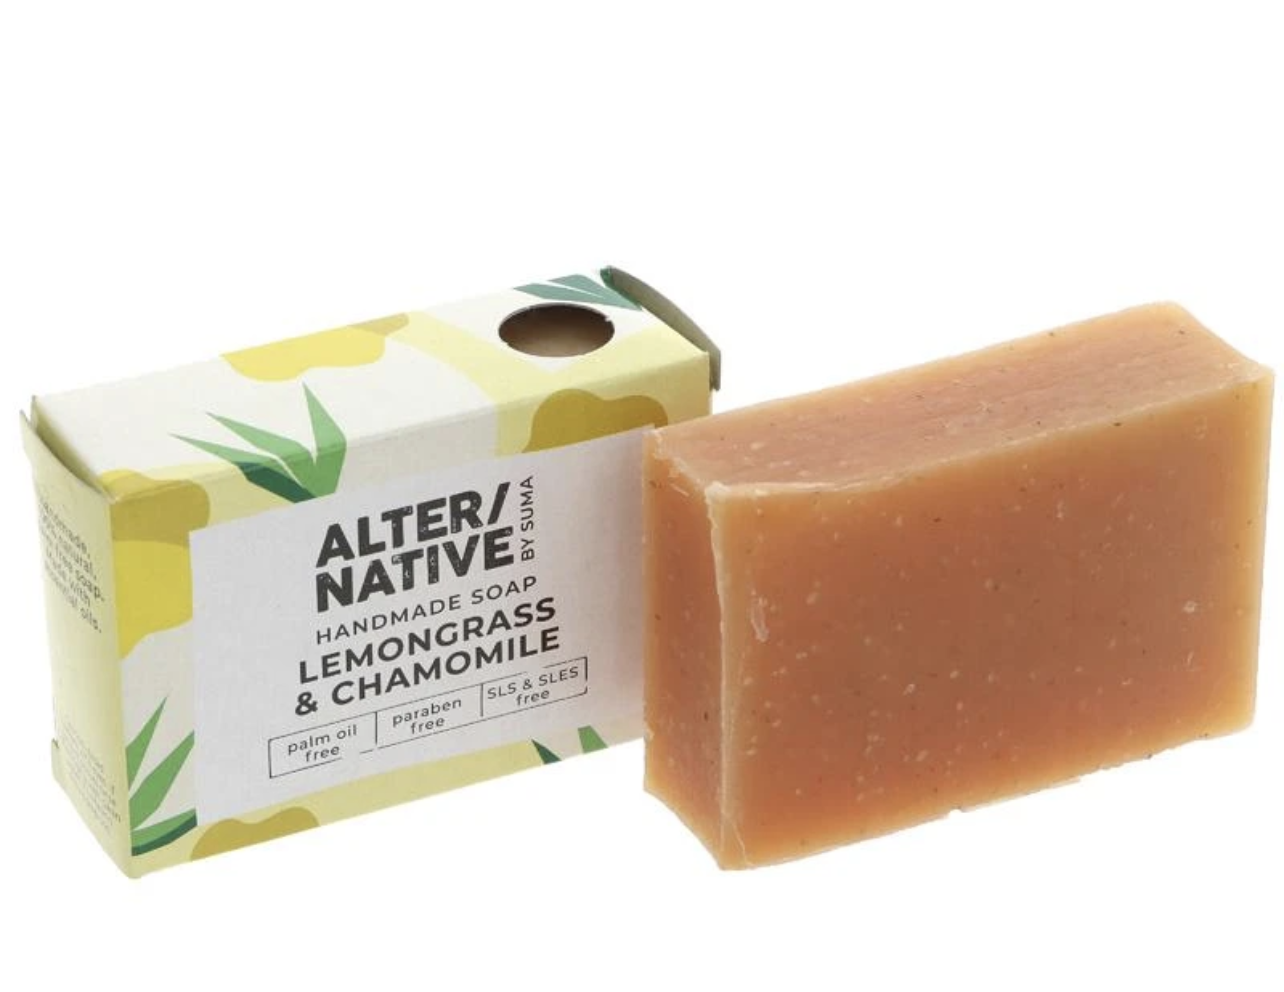 Lemon Grass and Chammomile Soap 95G (alter/native)